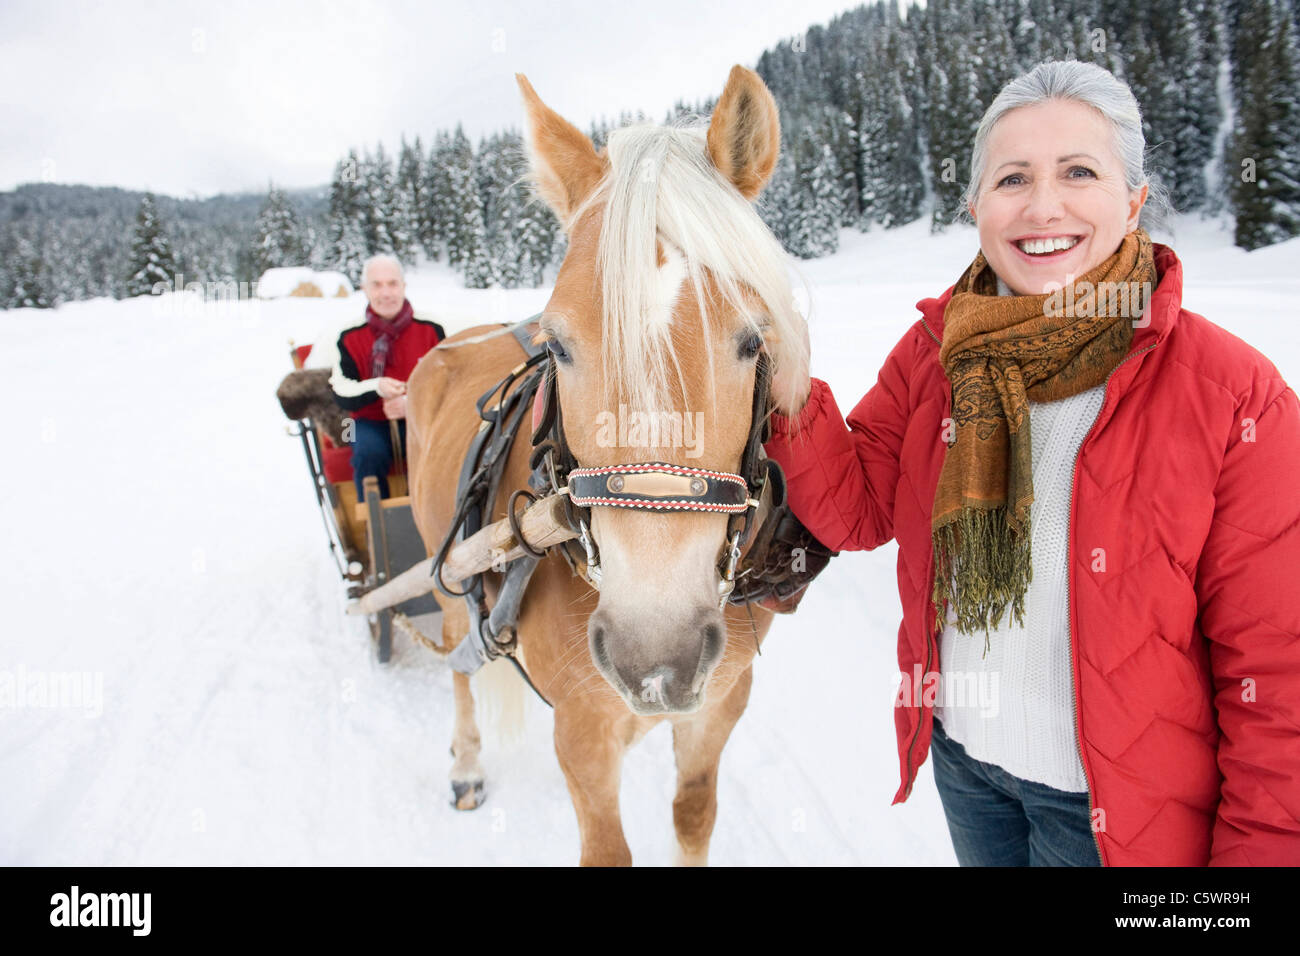 Italy, South Tyrol, Seiseralm, Senior woman standing by horse, man sitting in sleigh, smiling, portrait Stock Photo